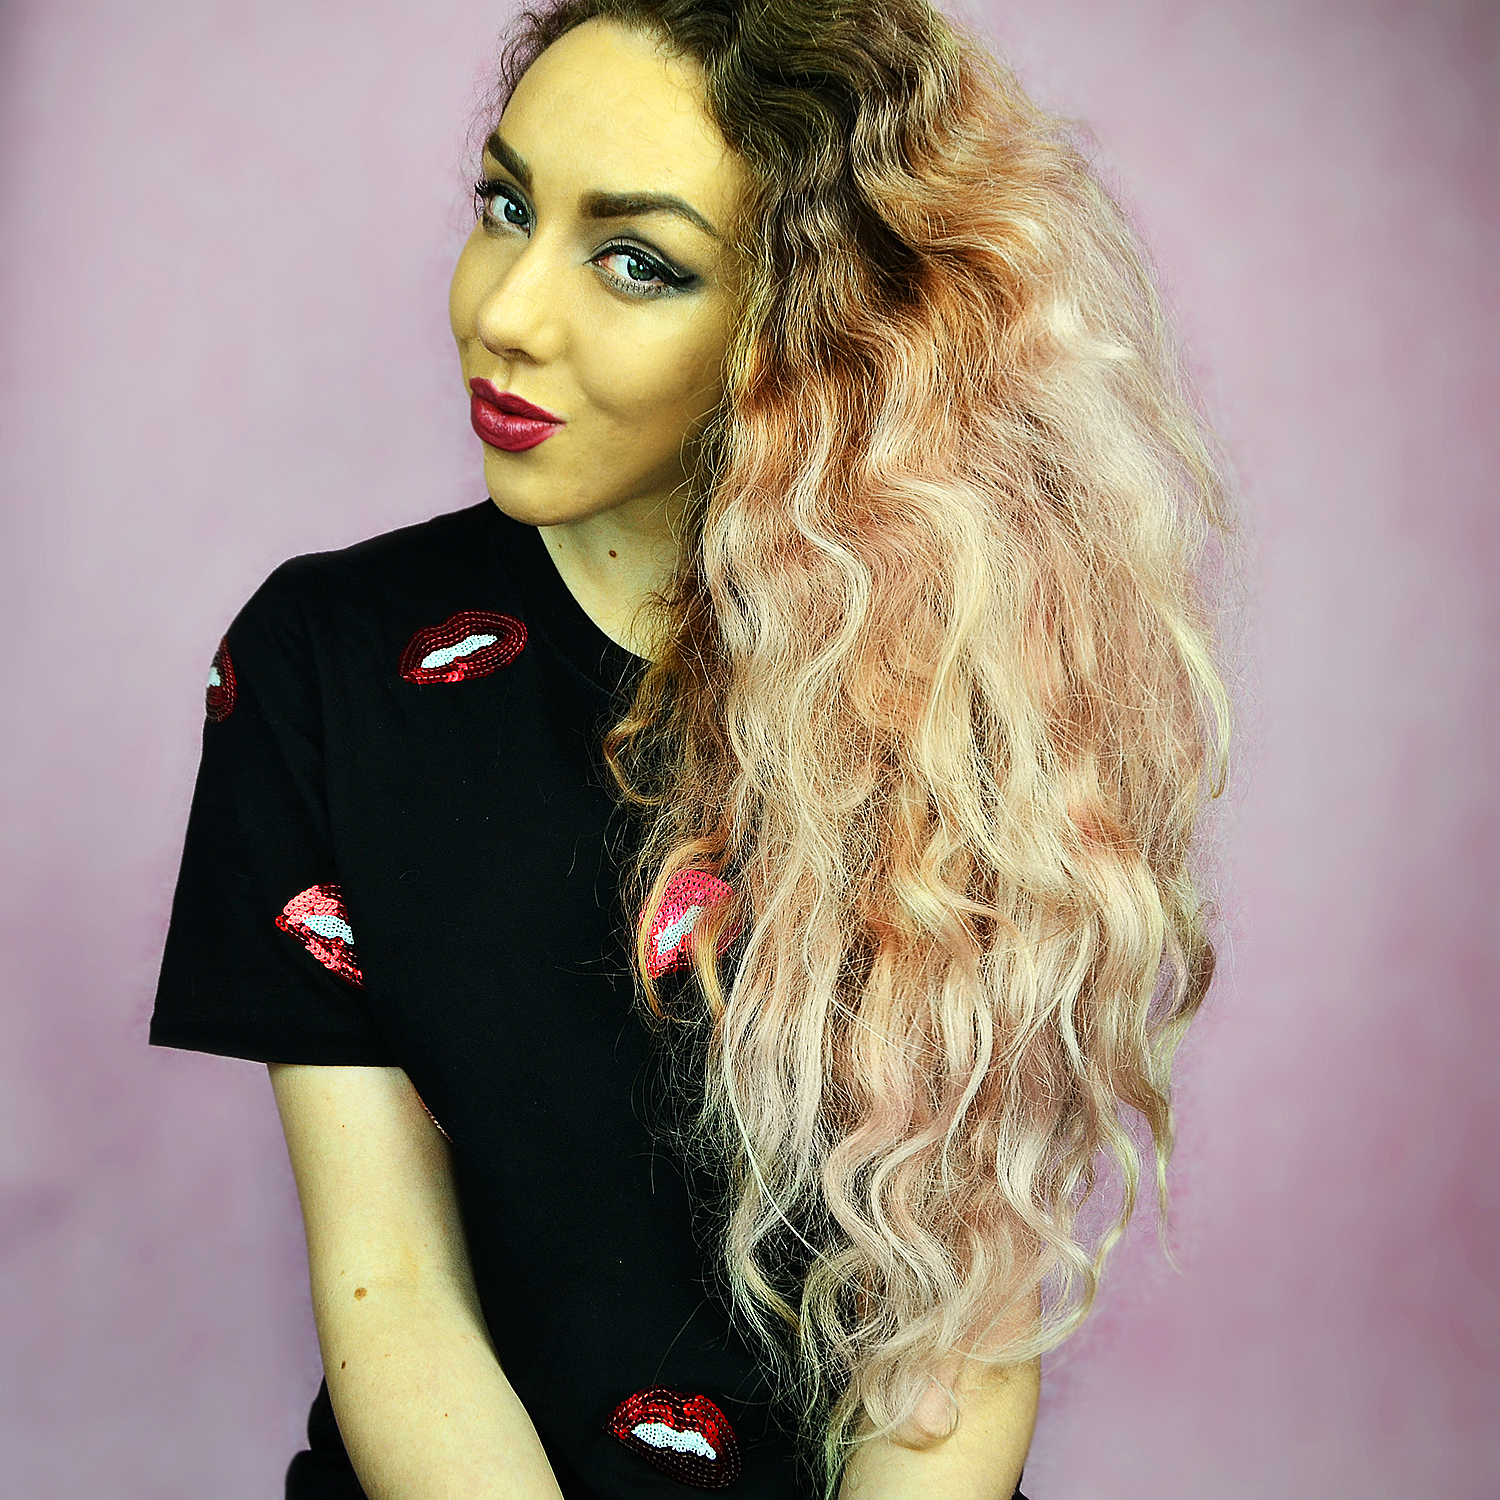 Tales Of A Long Pink Haired Mermaid - Hair Advice, Dying, Maintainence, Curly Hair Care, // Lifestyle & Beauty Blogger Stephi LaReine